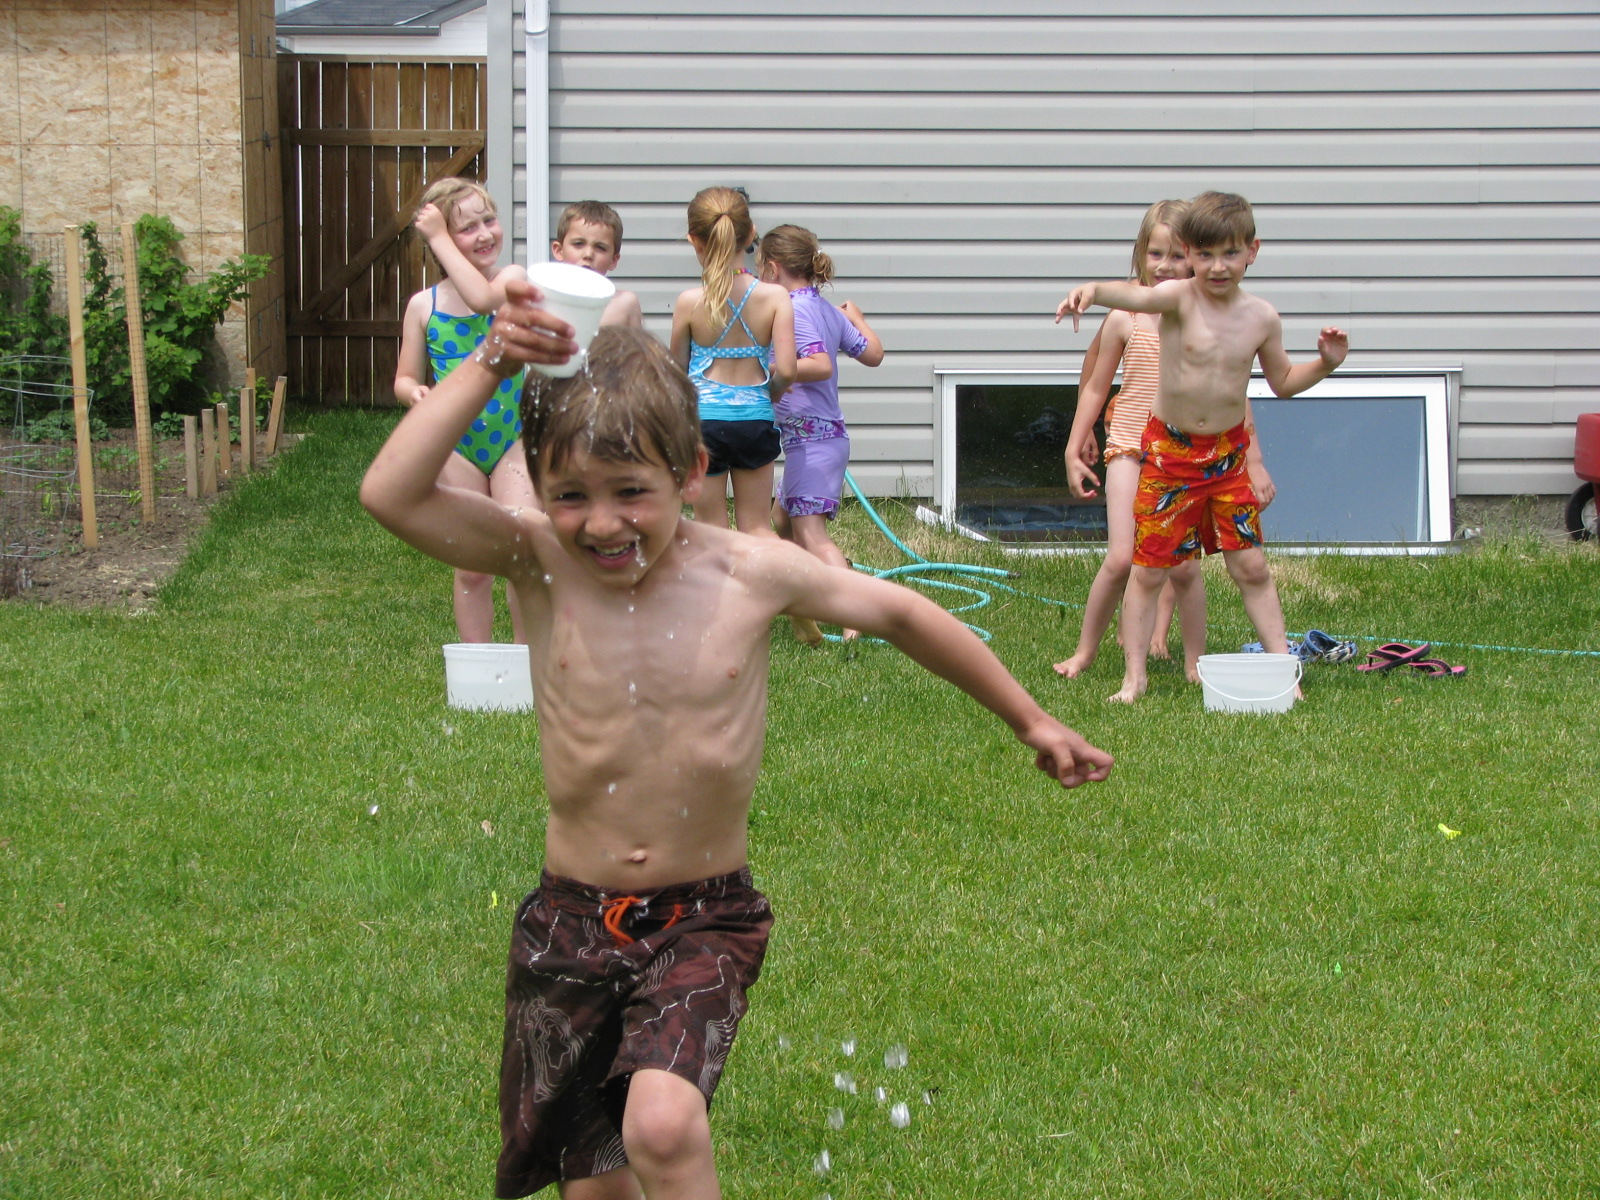 Making Merry Memories More Water Games